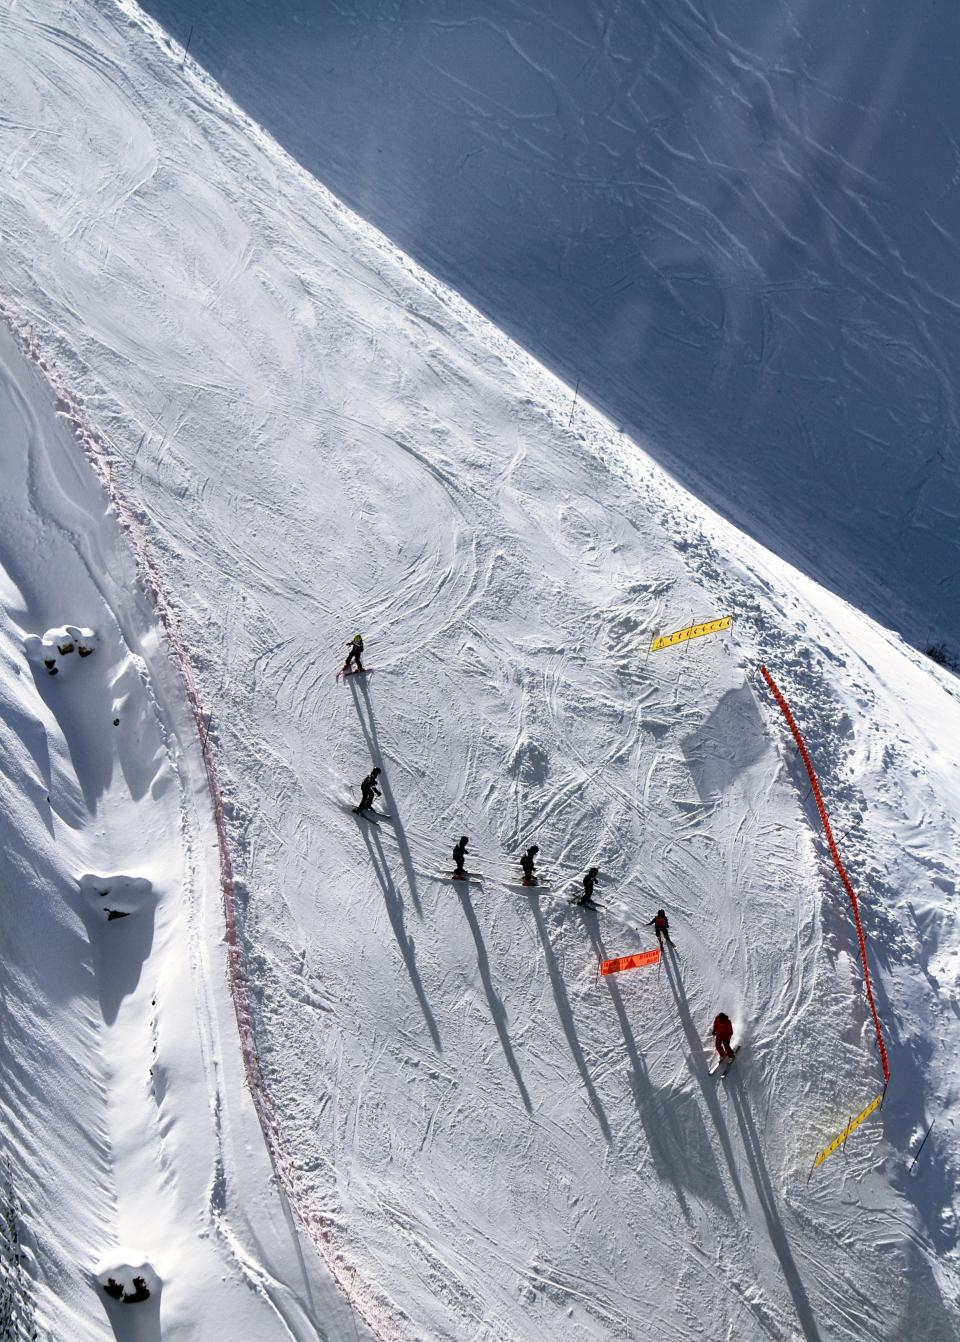 ice skiing skier ski run sunny snow winter people men sport mountain